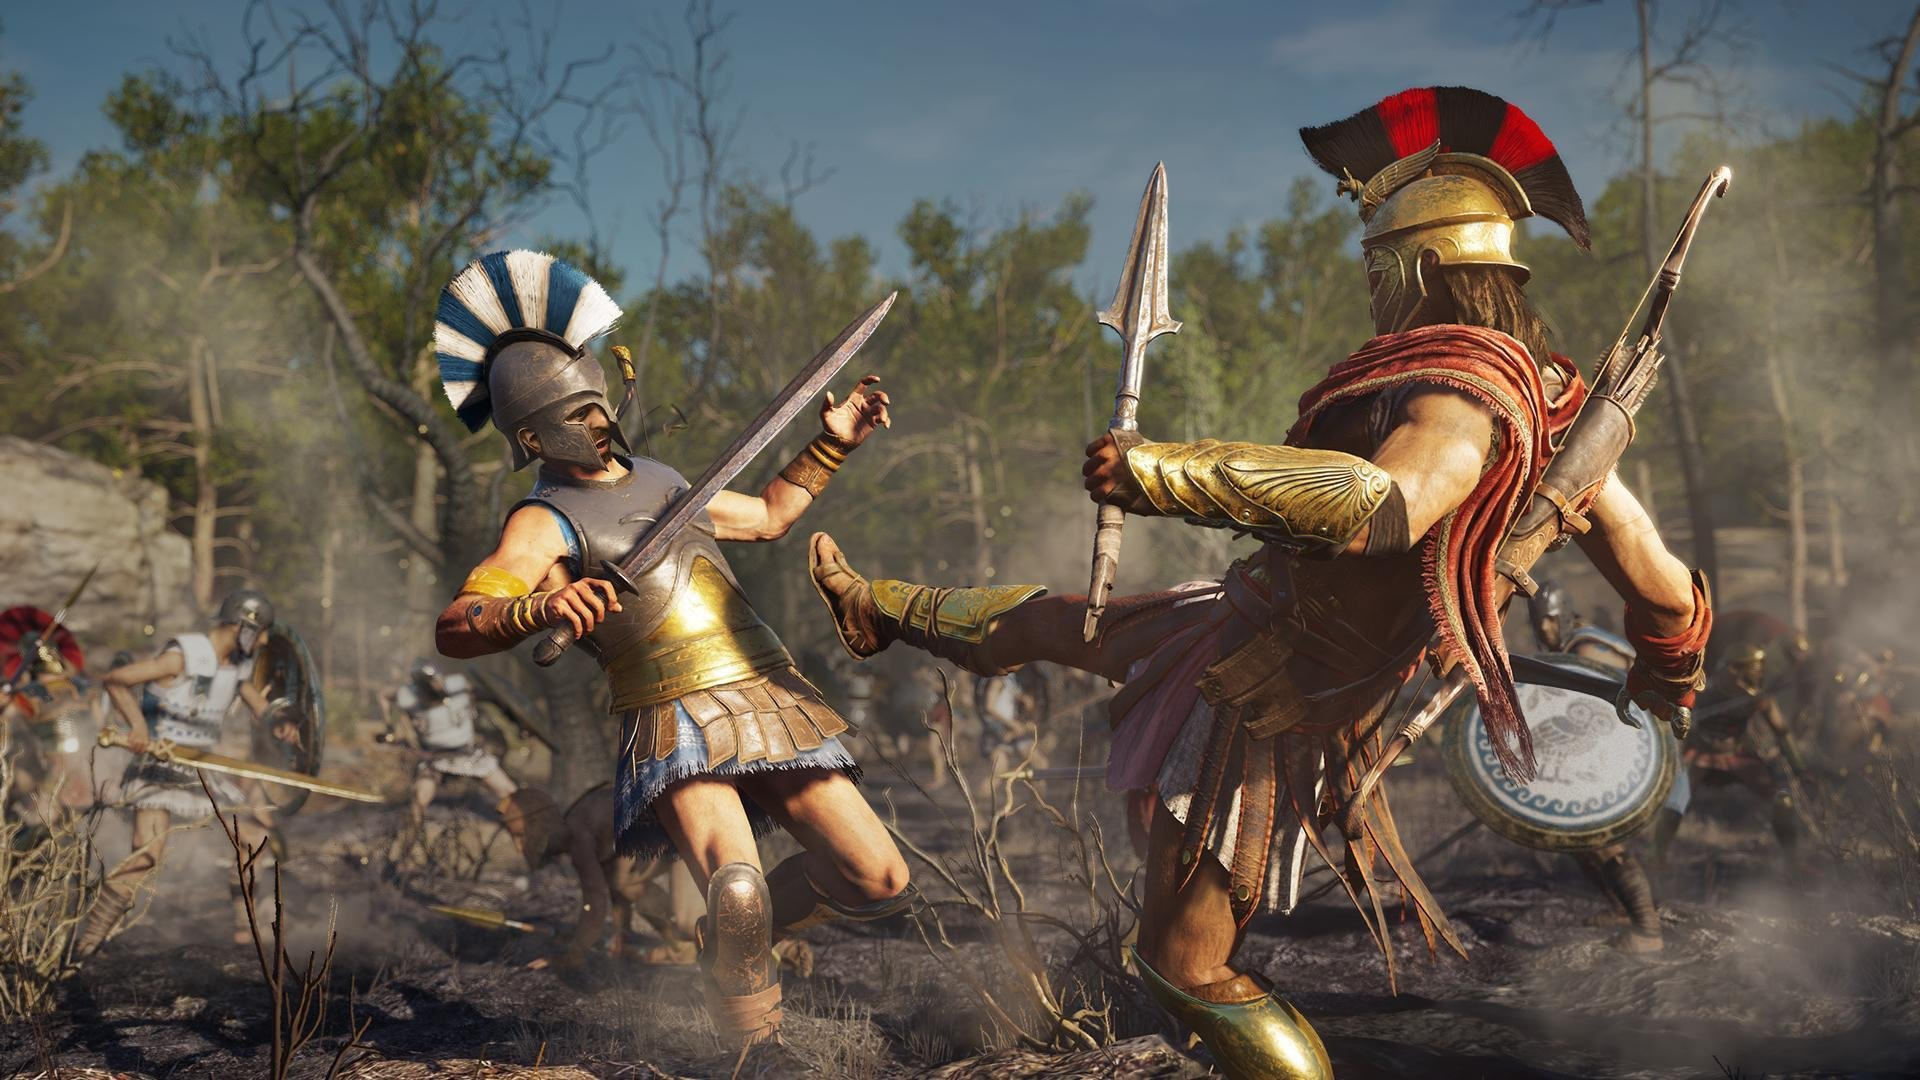 Battle gameplay in Assassins Creed Odyssey